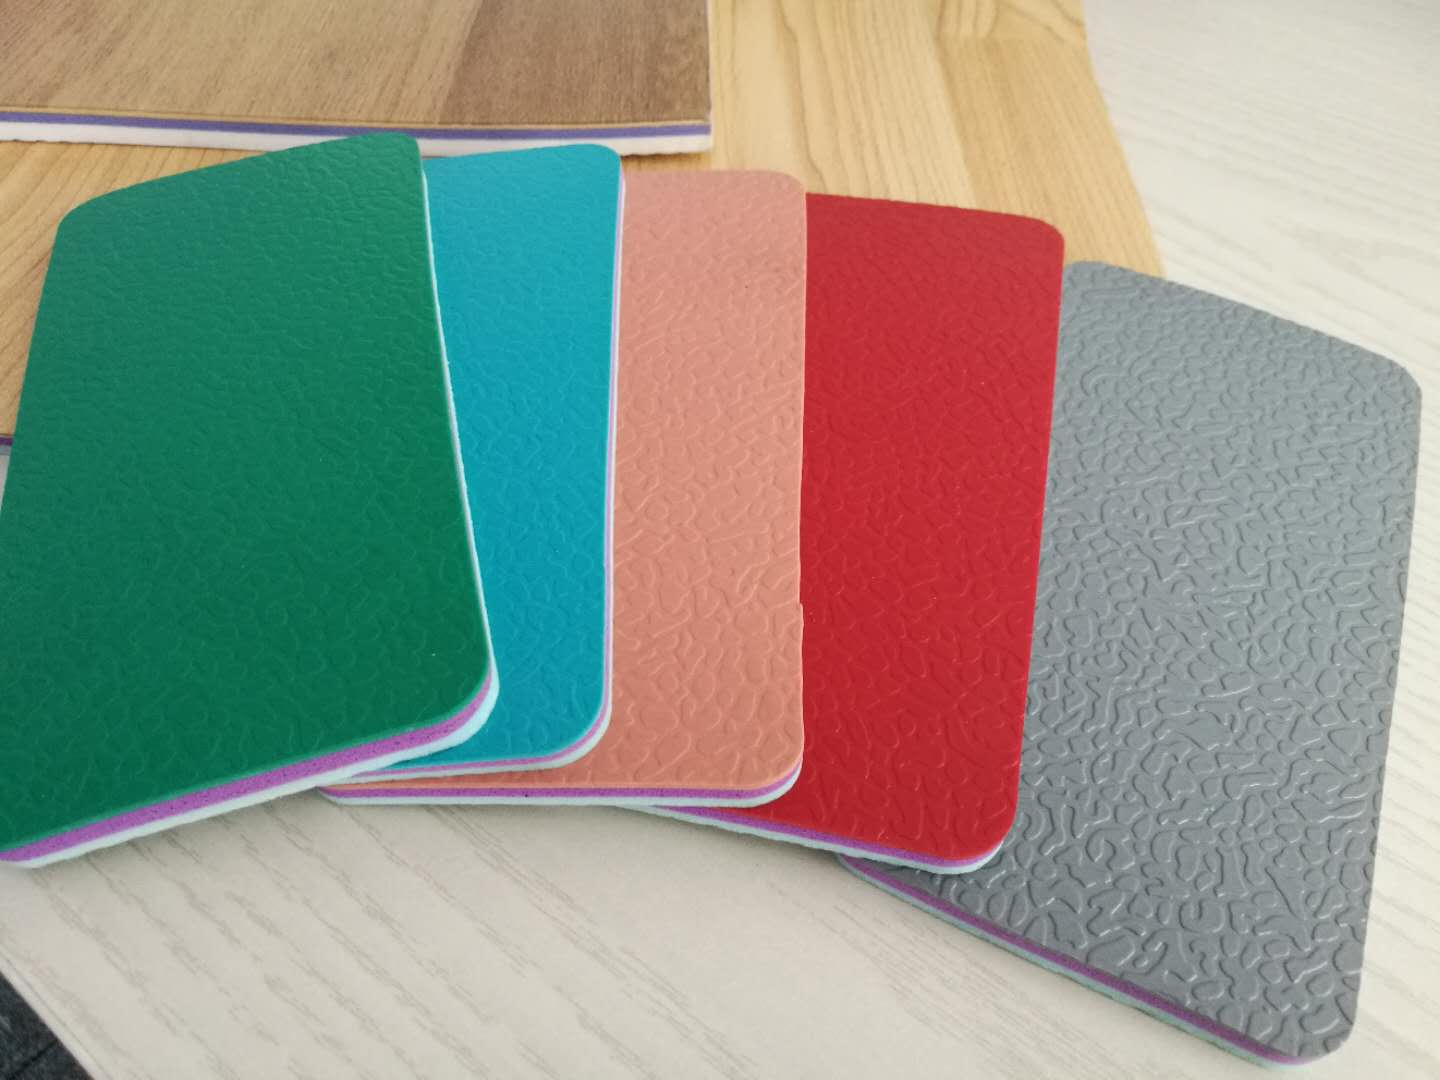 High Quality Sports Flooring, from China SinoCourts